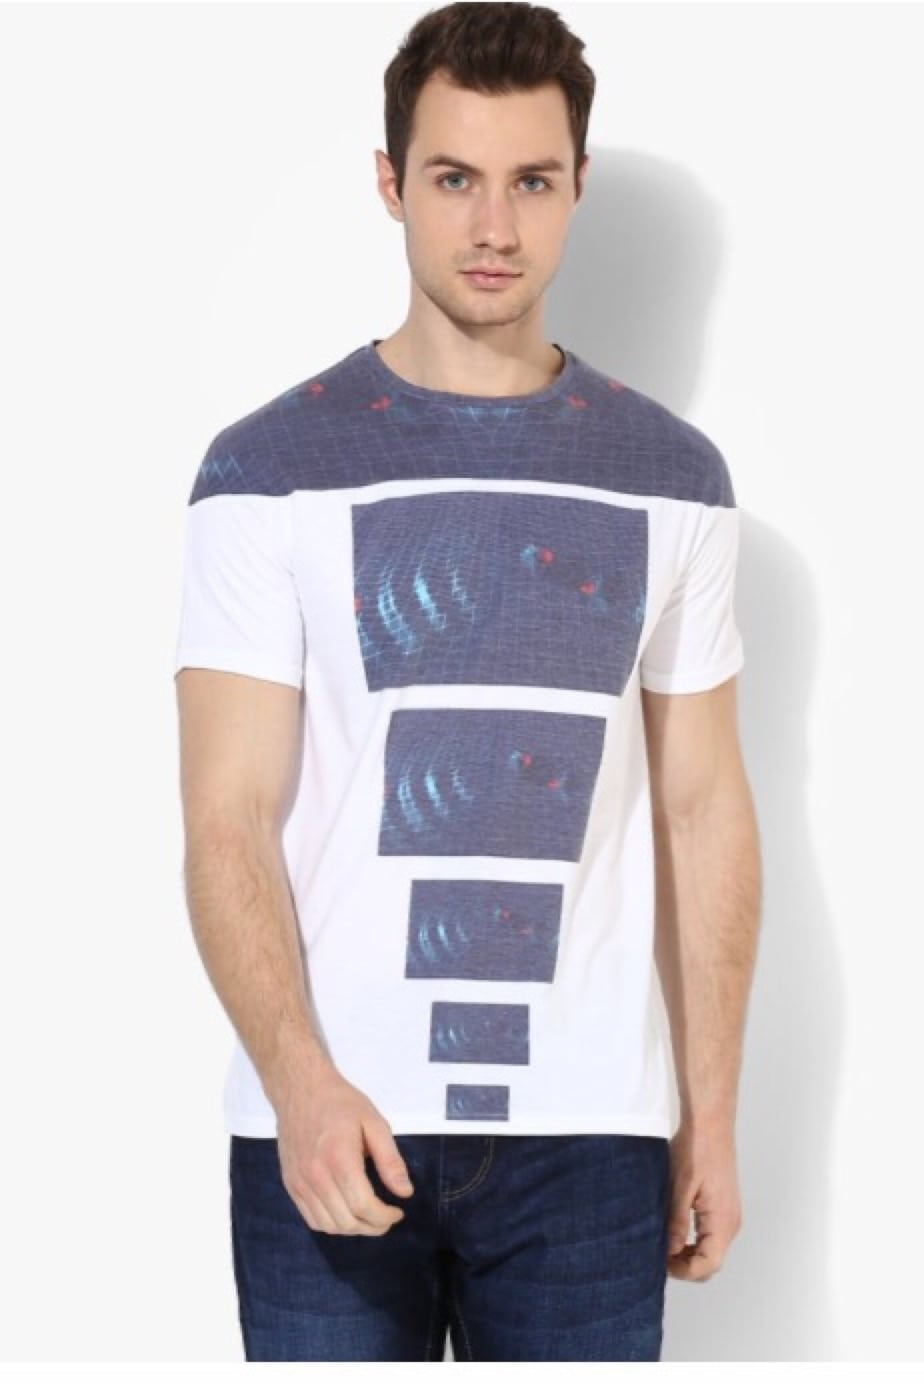 Smart Men's Tees ₹799 only on STCLOSET       #shopnow #men-fashion #men's fashion #mens wear #tshirtshop #tshirtsformen #menstshirts #mens style #shoponlineformen  #smartmenswear